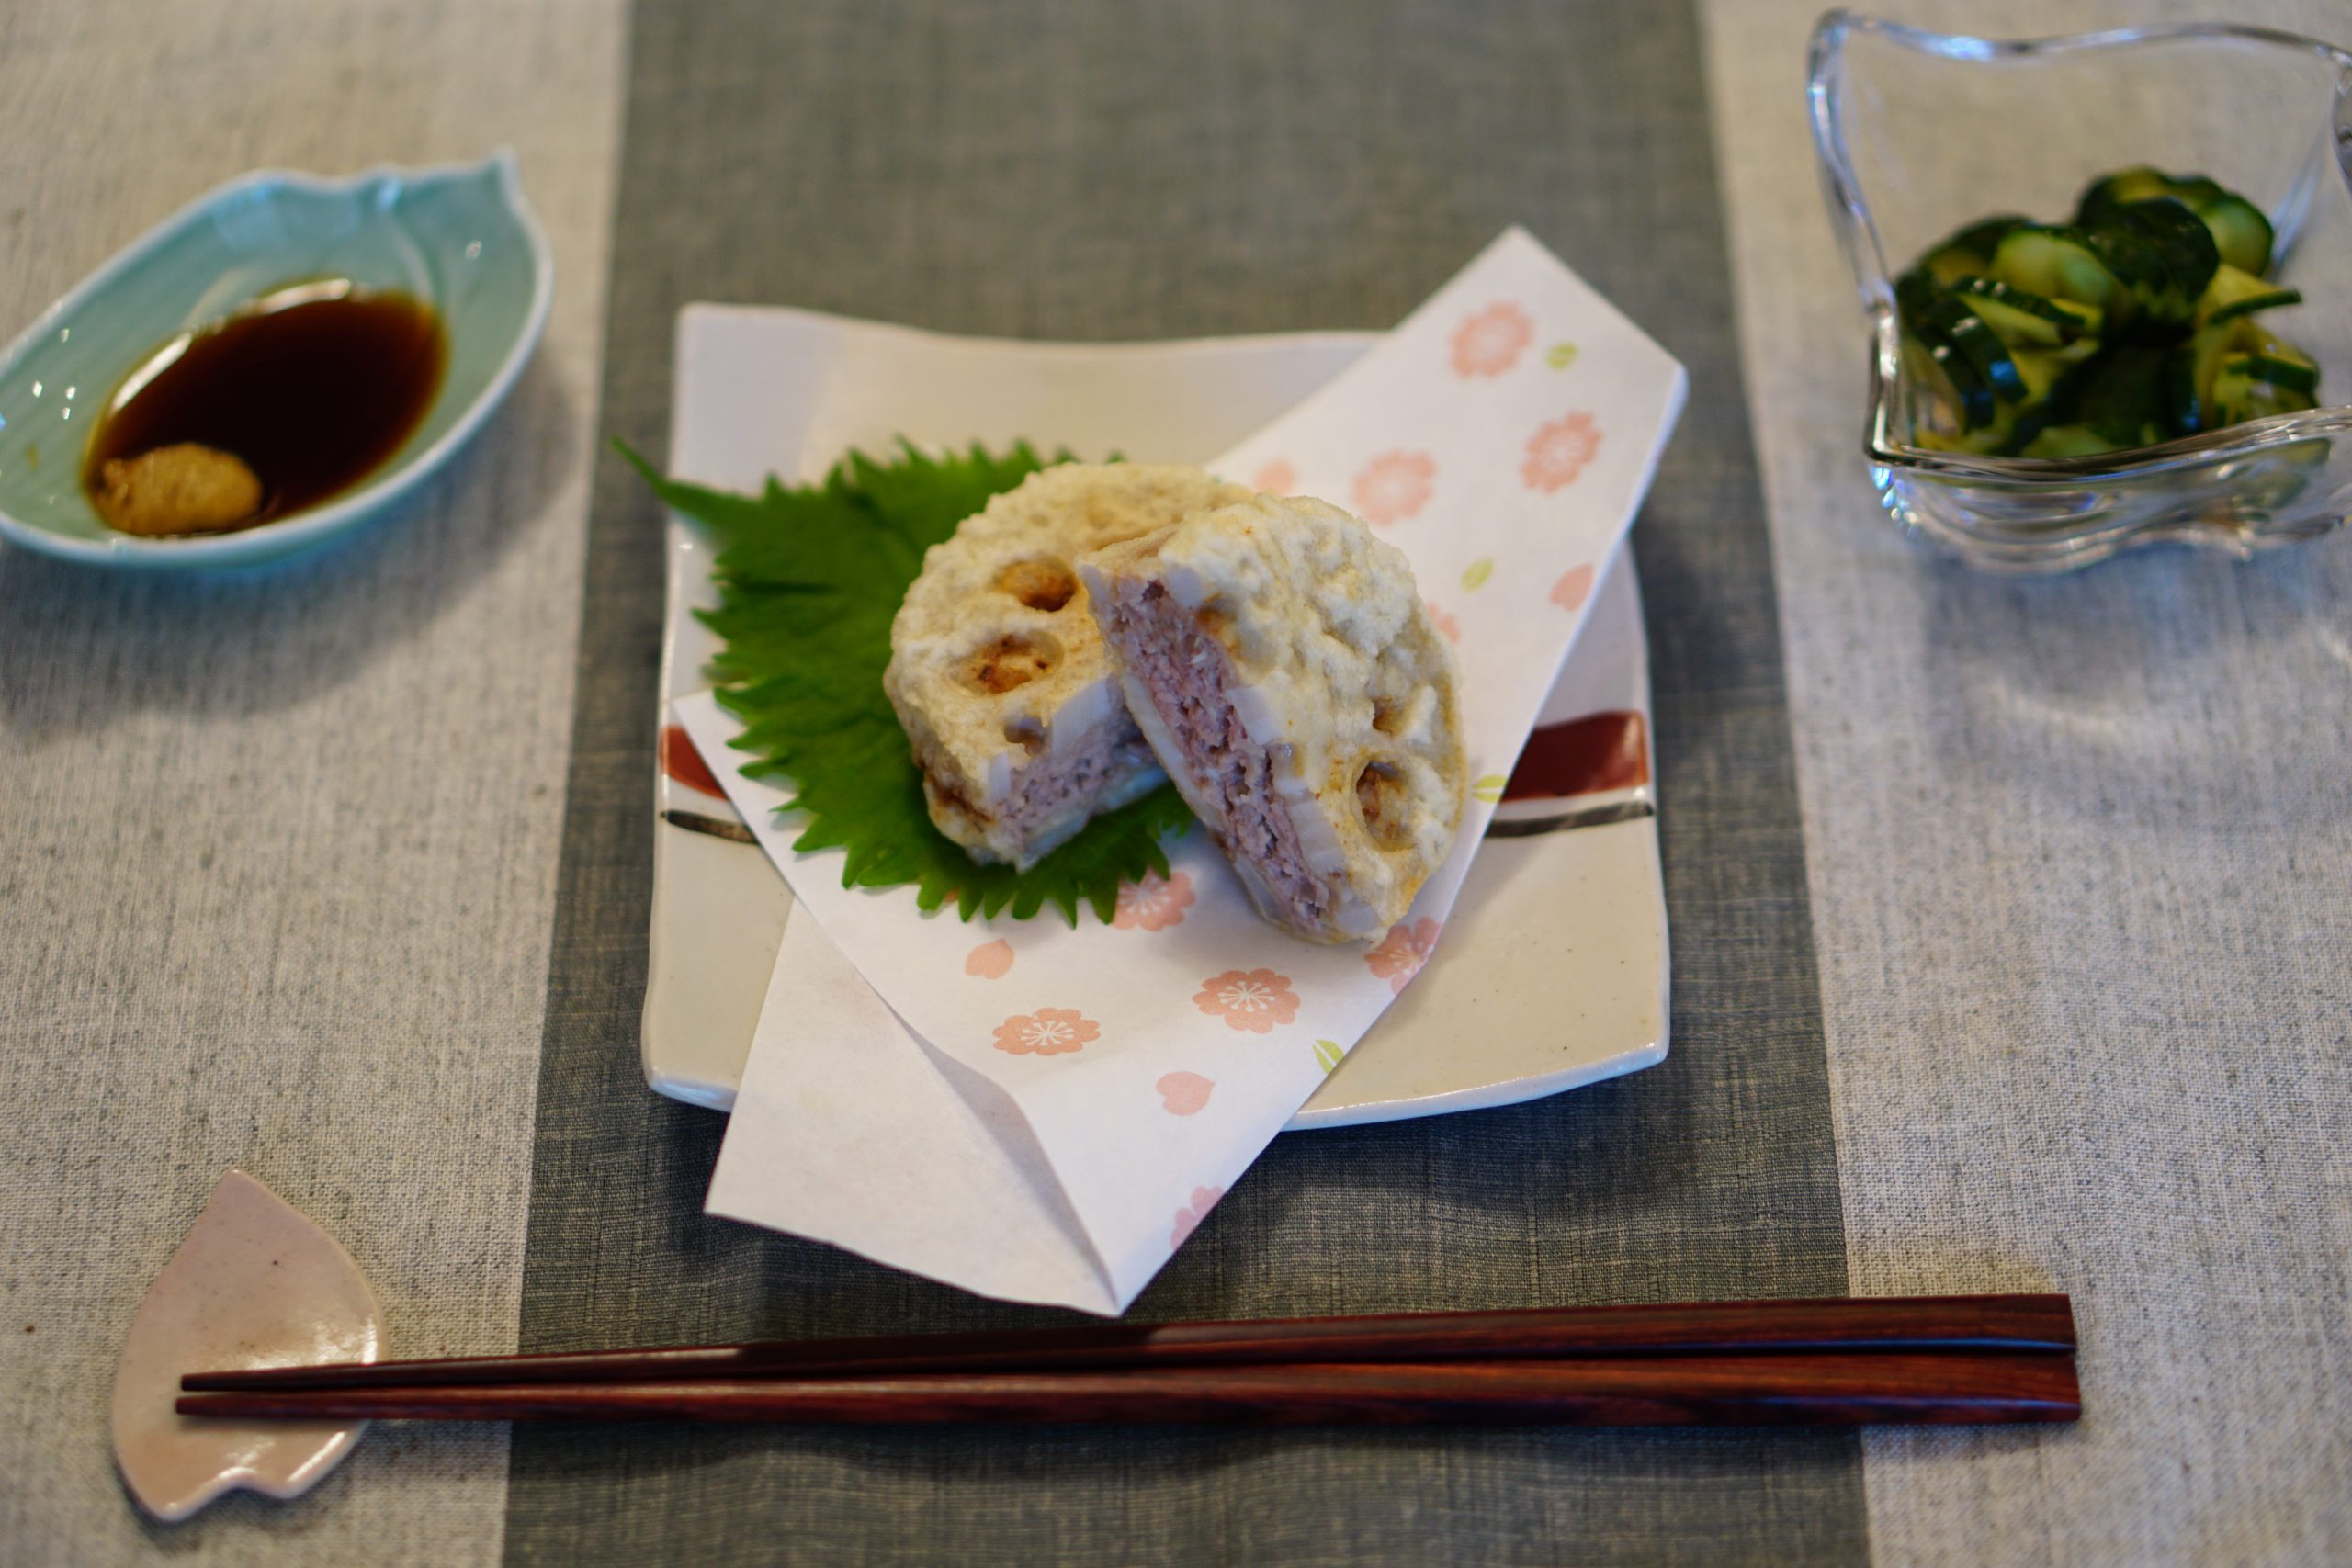 Deep-fried Lotus Root Sandwiches